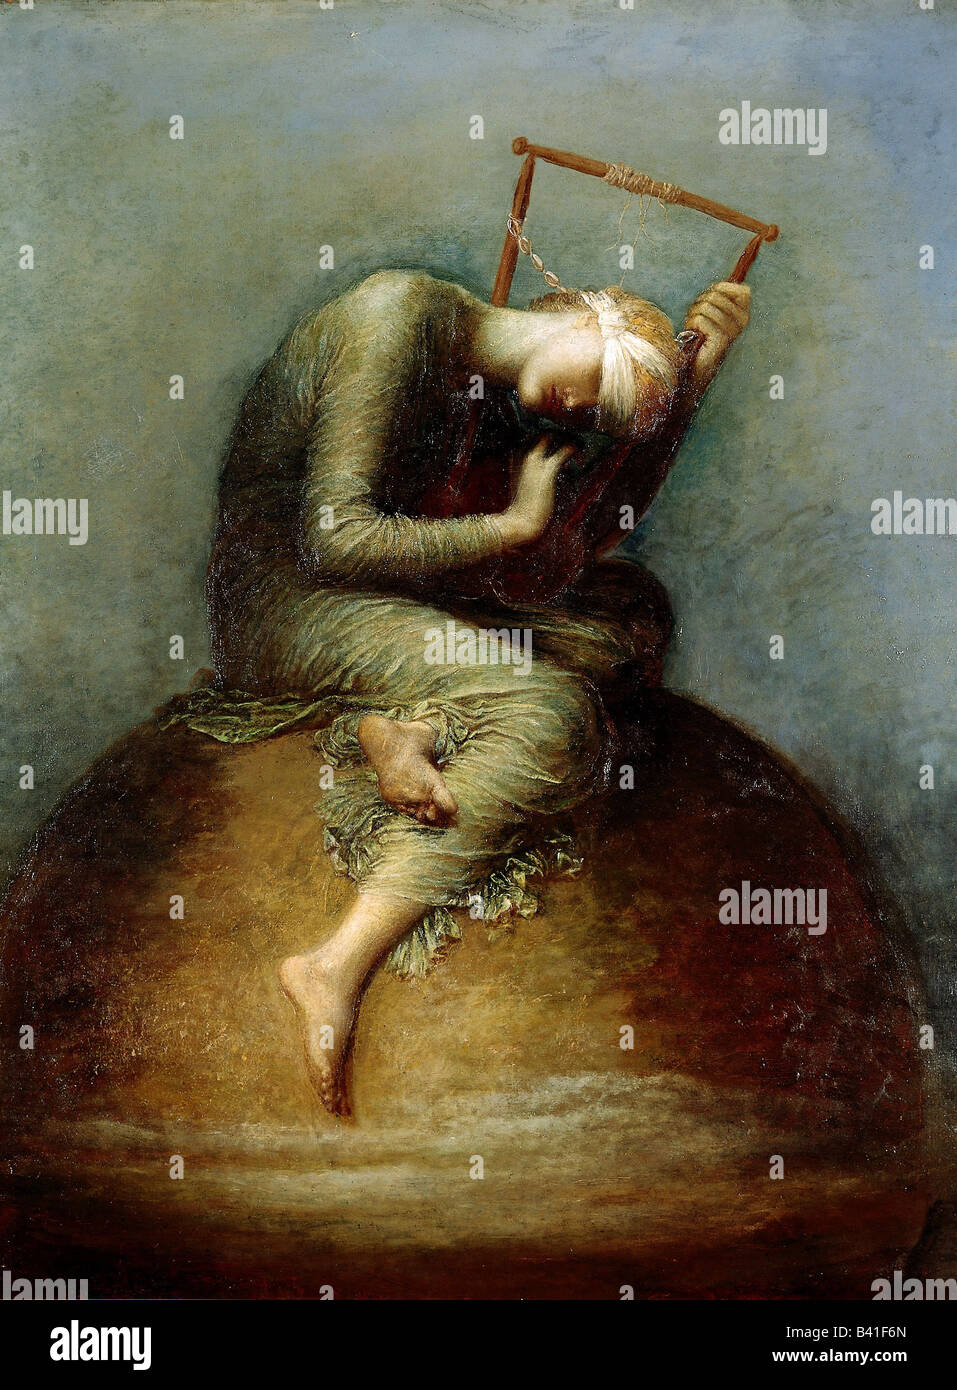 fine arts - Watts, George Frederic (1817 - 1904), painting, 'Hope', 1885, oil on canvas, 141 x 110 cm, Tate - Stock Image